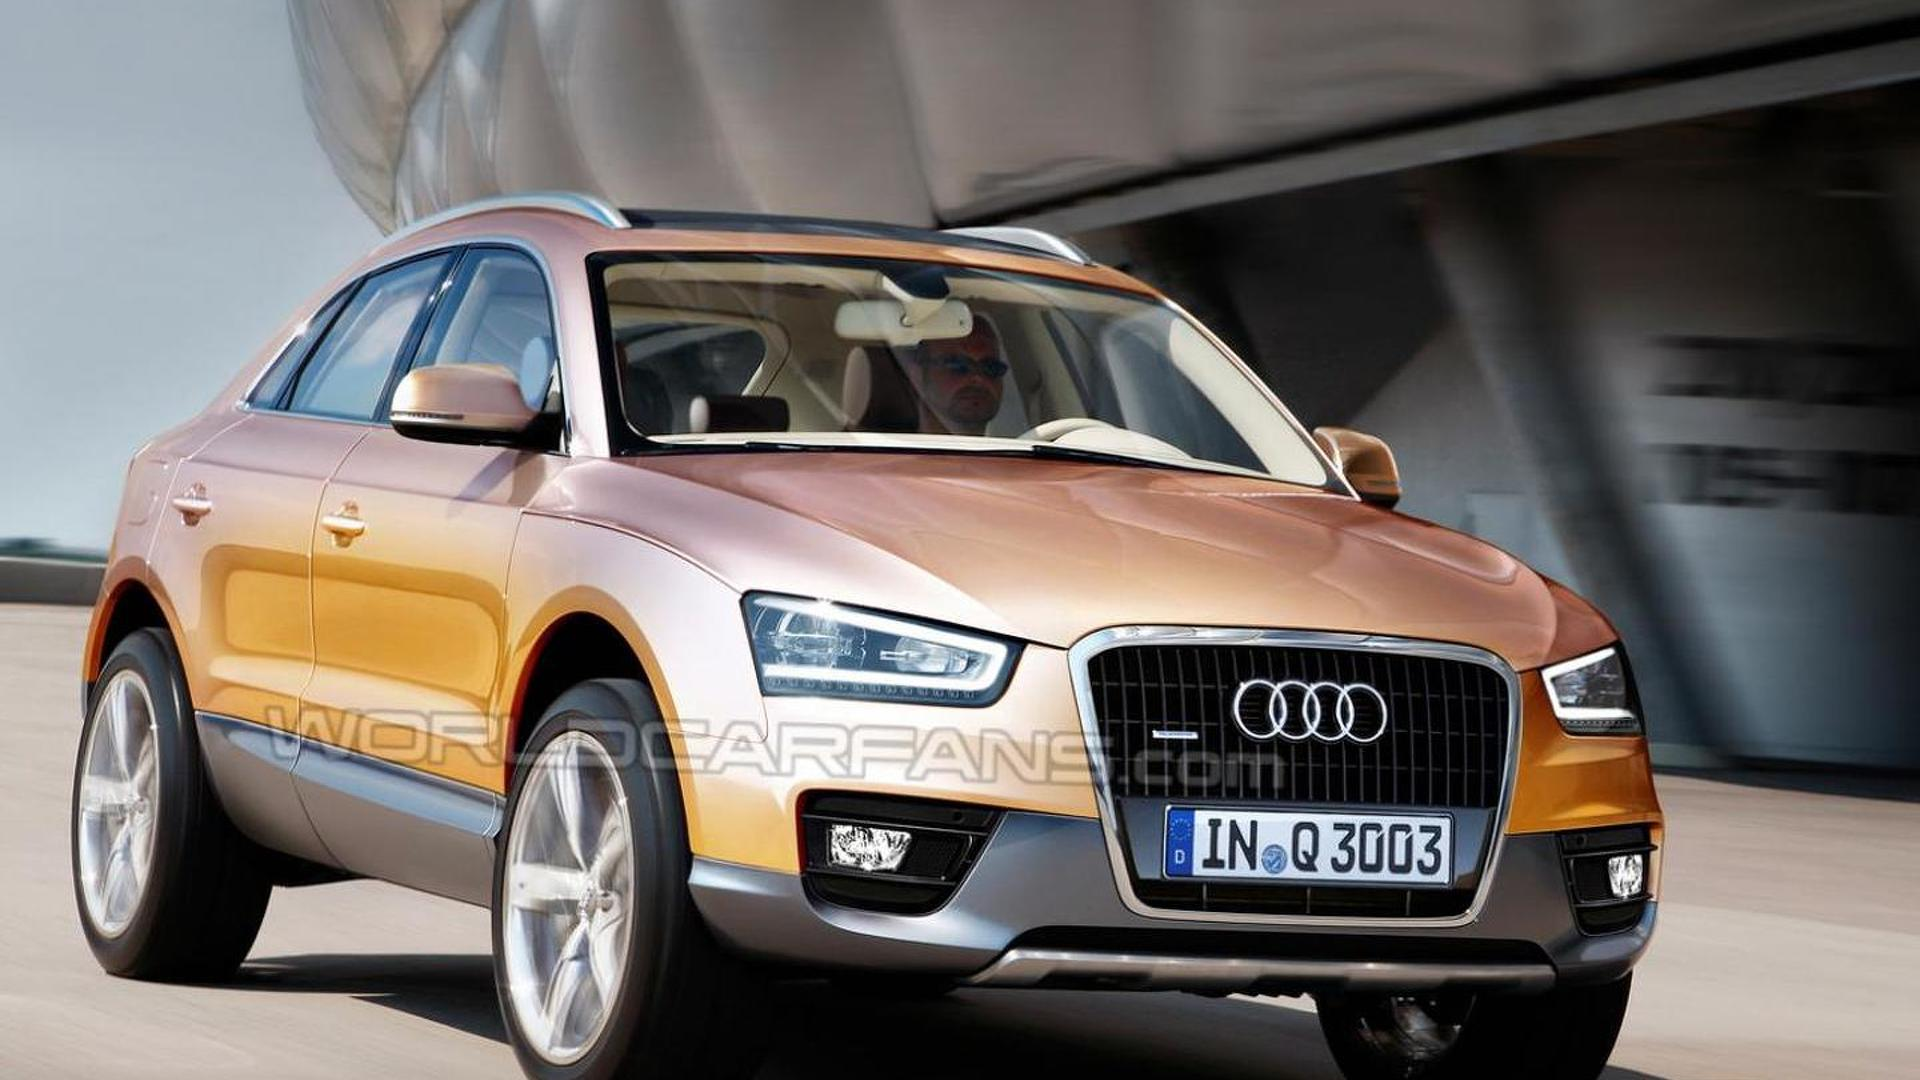 Audi planning product expansion for U.S. - including A1